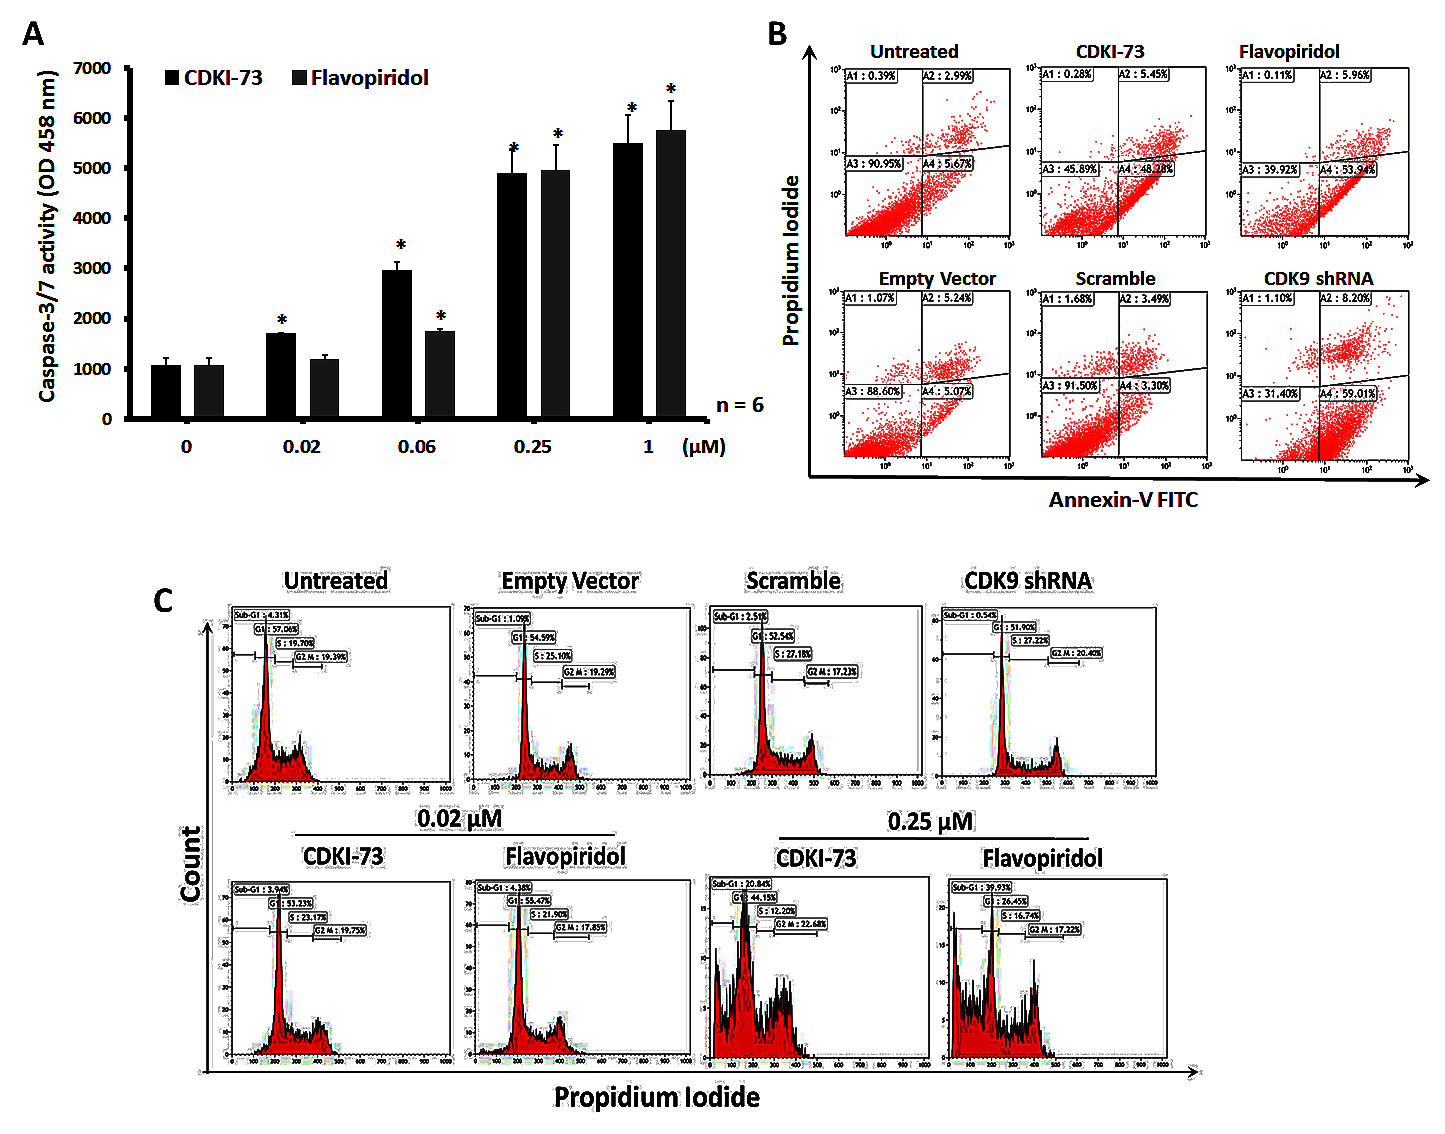 Induction of apoptosis by CDKI-73 and CDK9 shRNA.